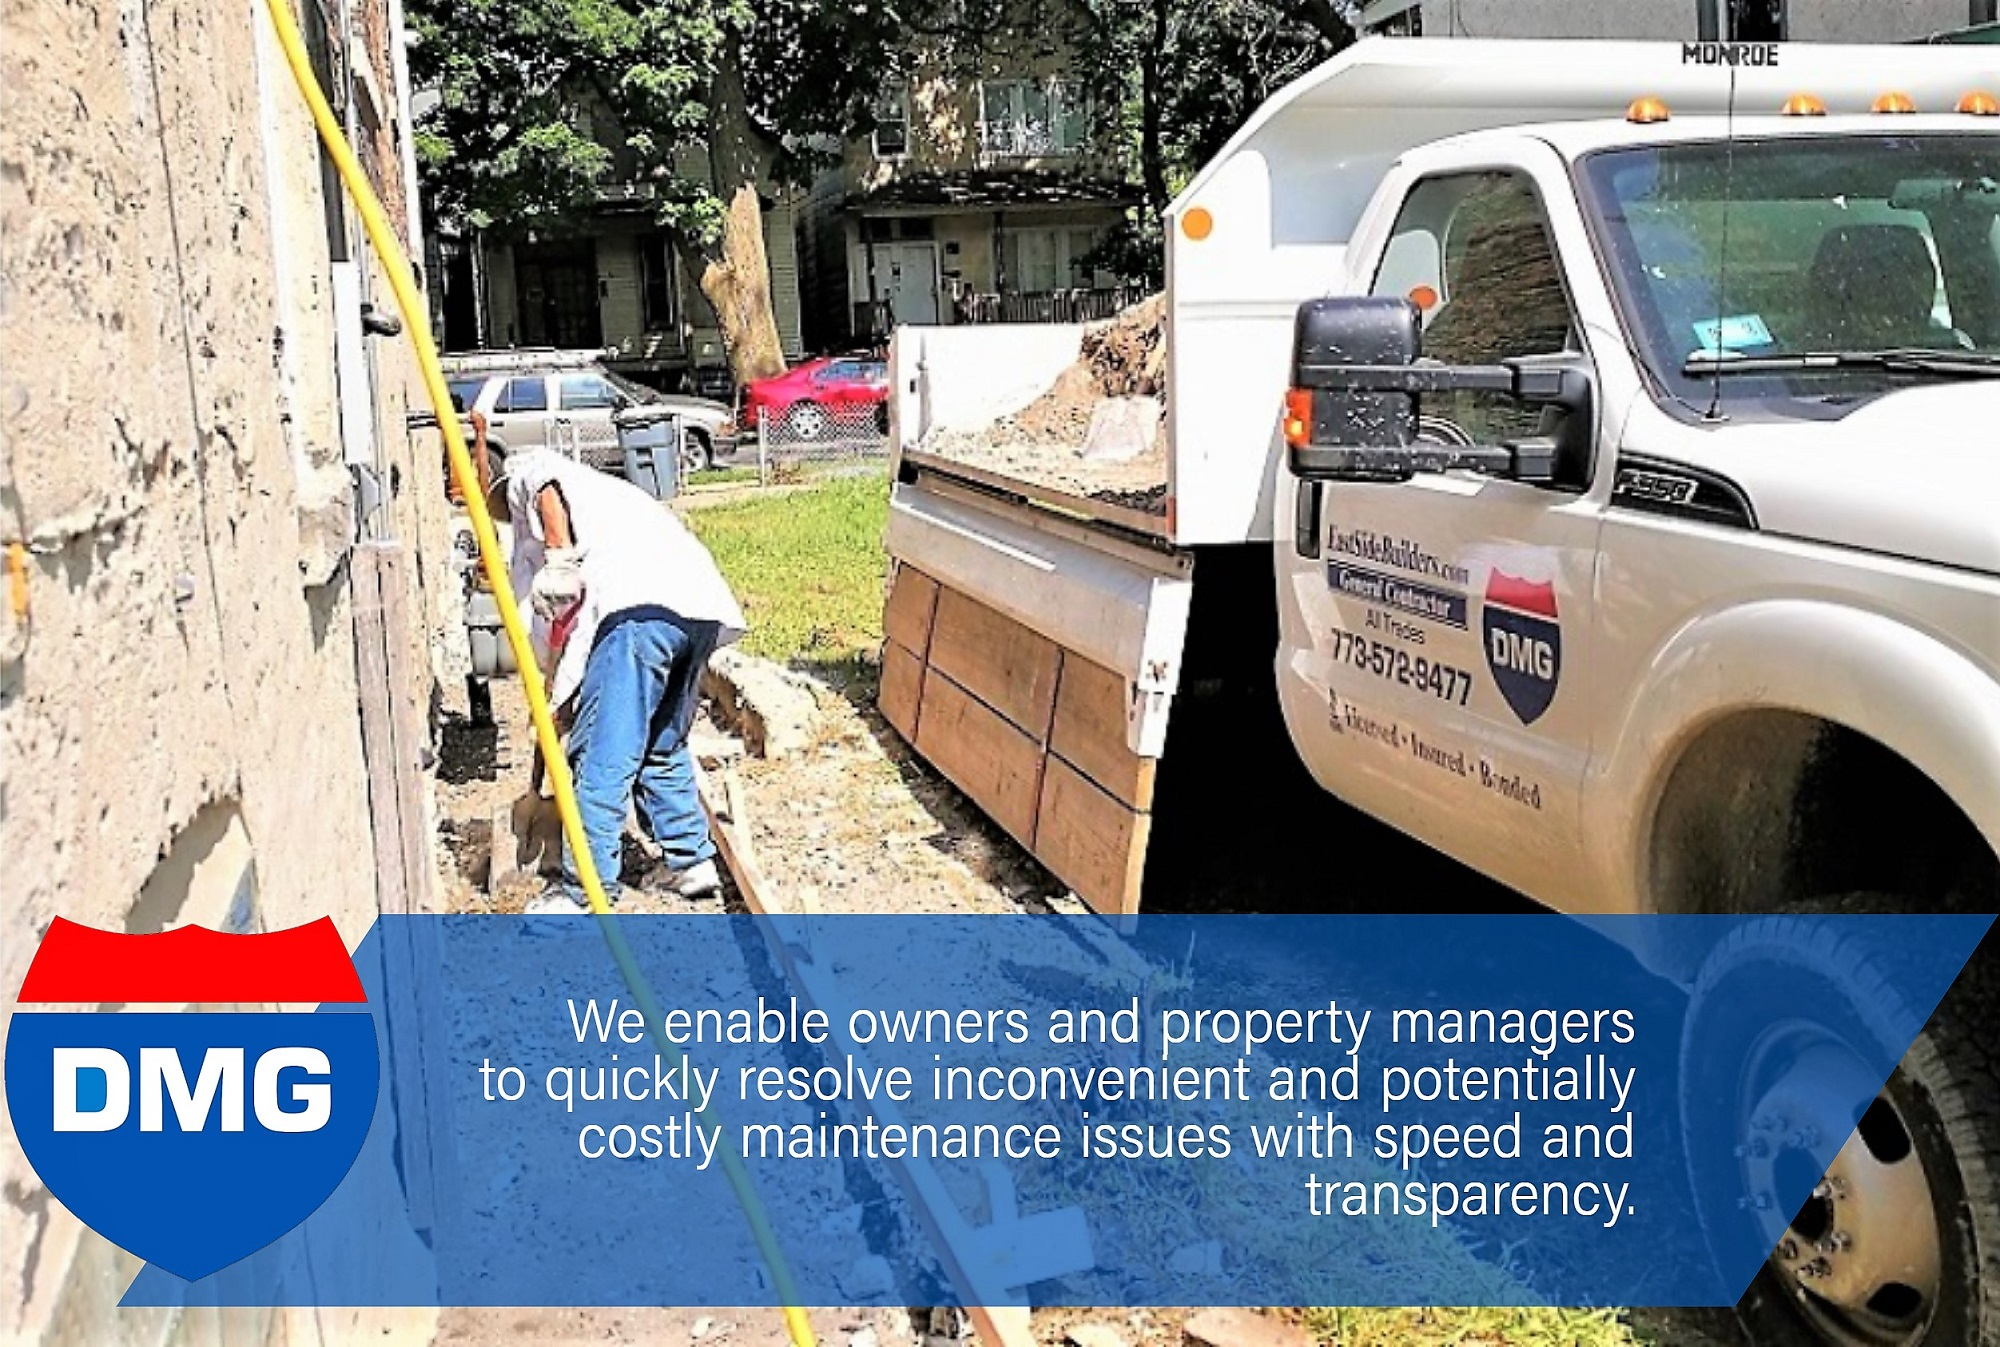 Make property maintenance and emergency repairs more convenient and affordable then ever. We will help you achieve your maintenance goals by maintaining your property and attending work orders or working alongside your vendor of choice. Our goal is efficie